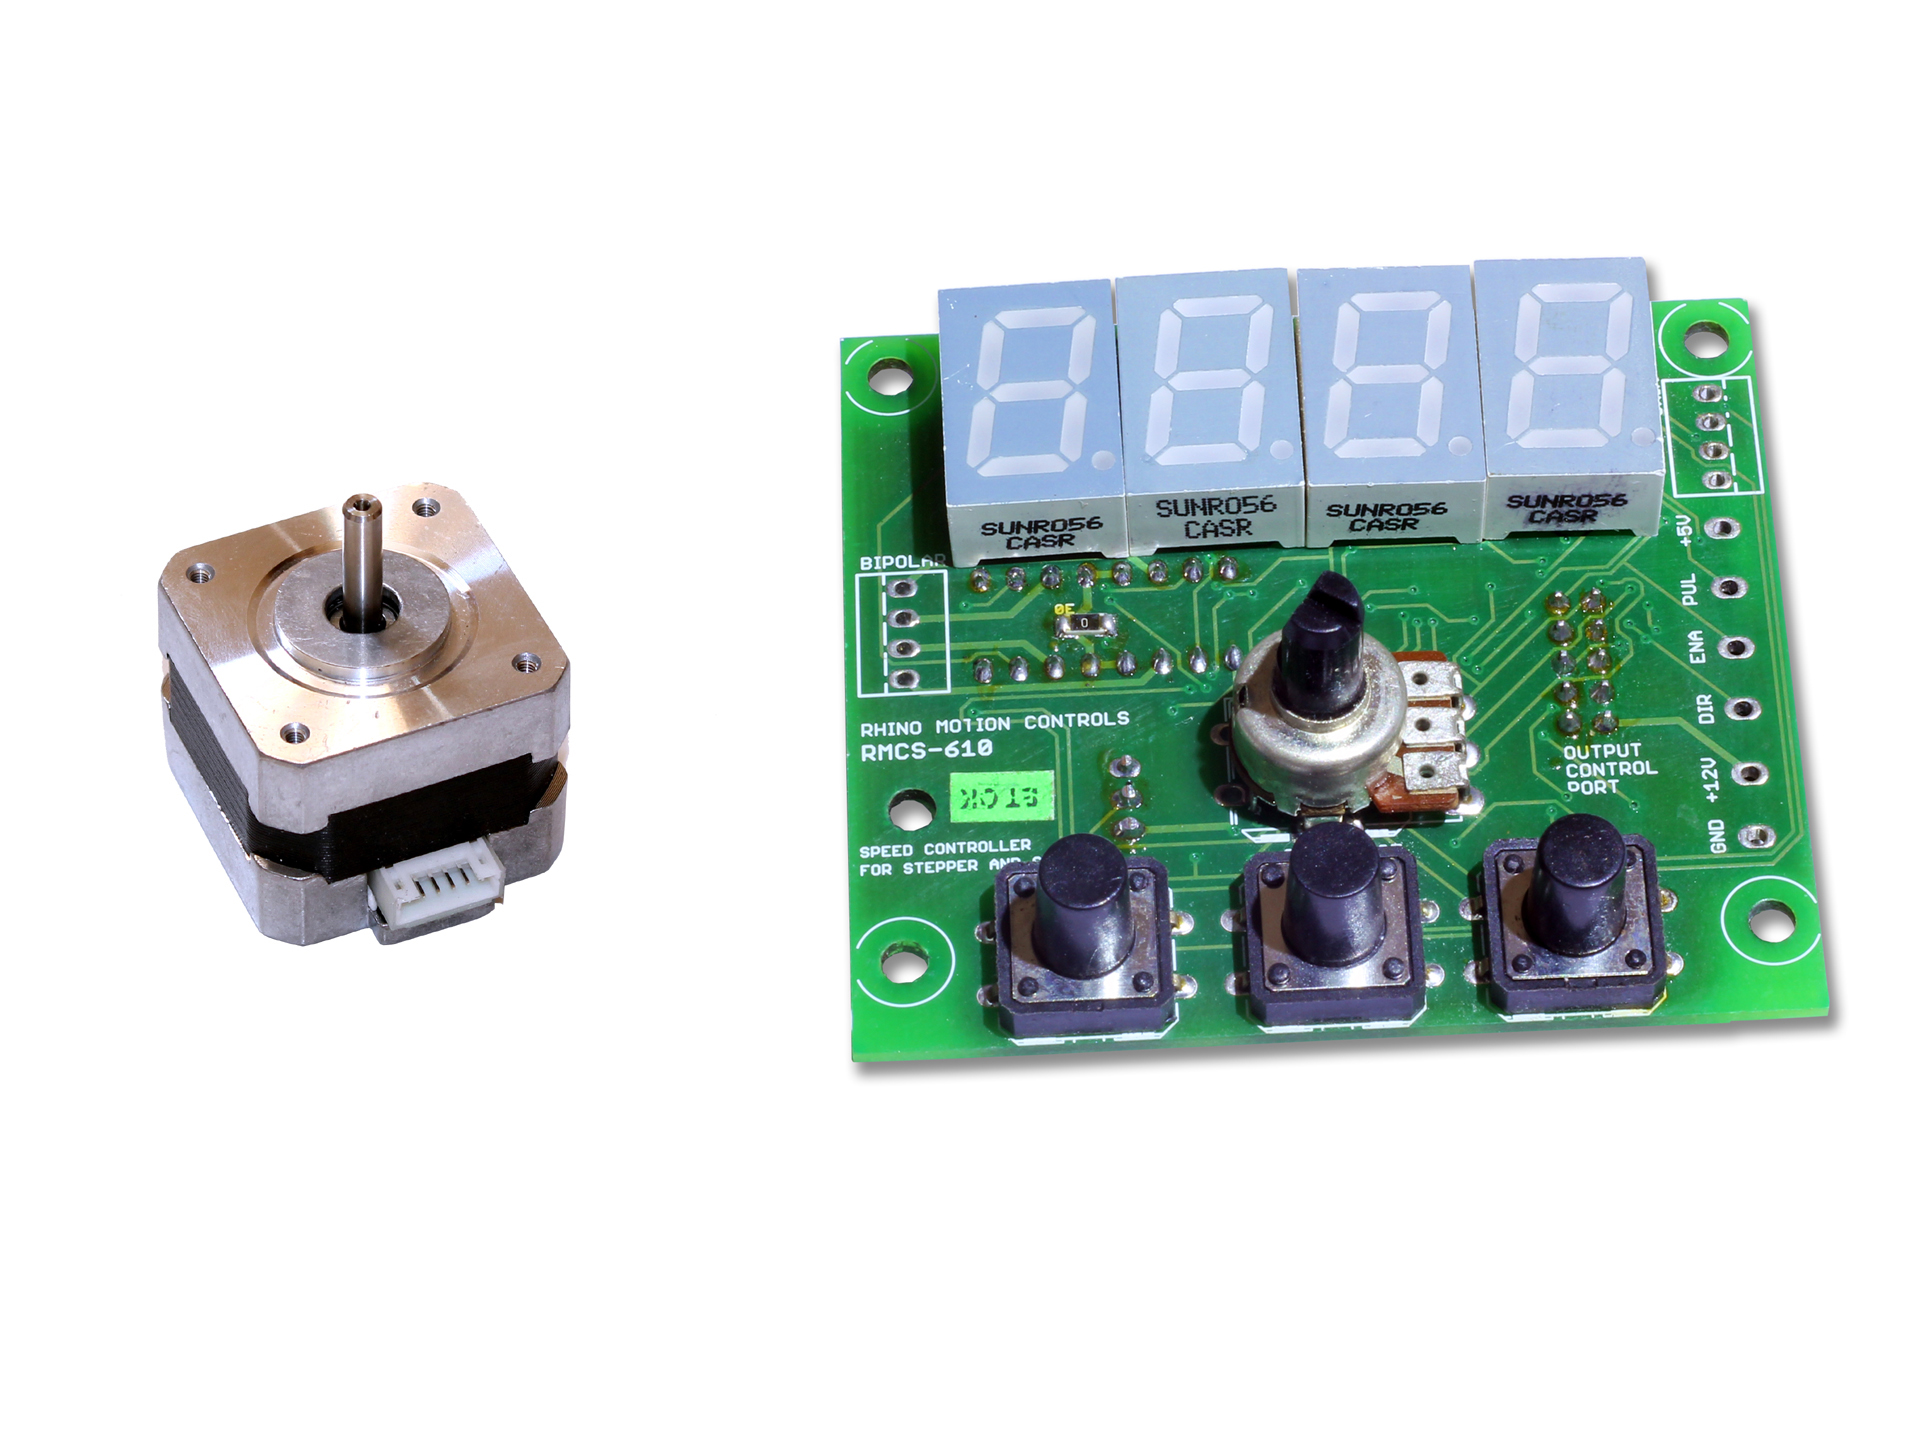 Stepper Motor High Torque With Digital Speed Controller Rmcs 6101 Universal Control Circuit Comes A Simple That Allows You To The And Direction Of